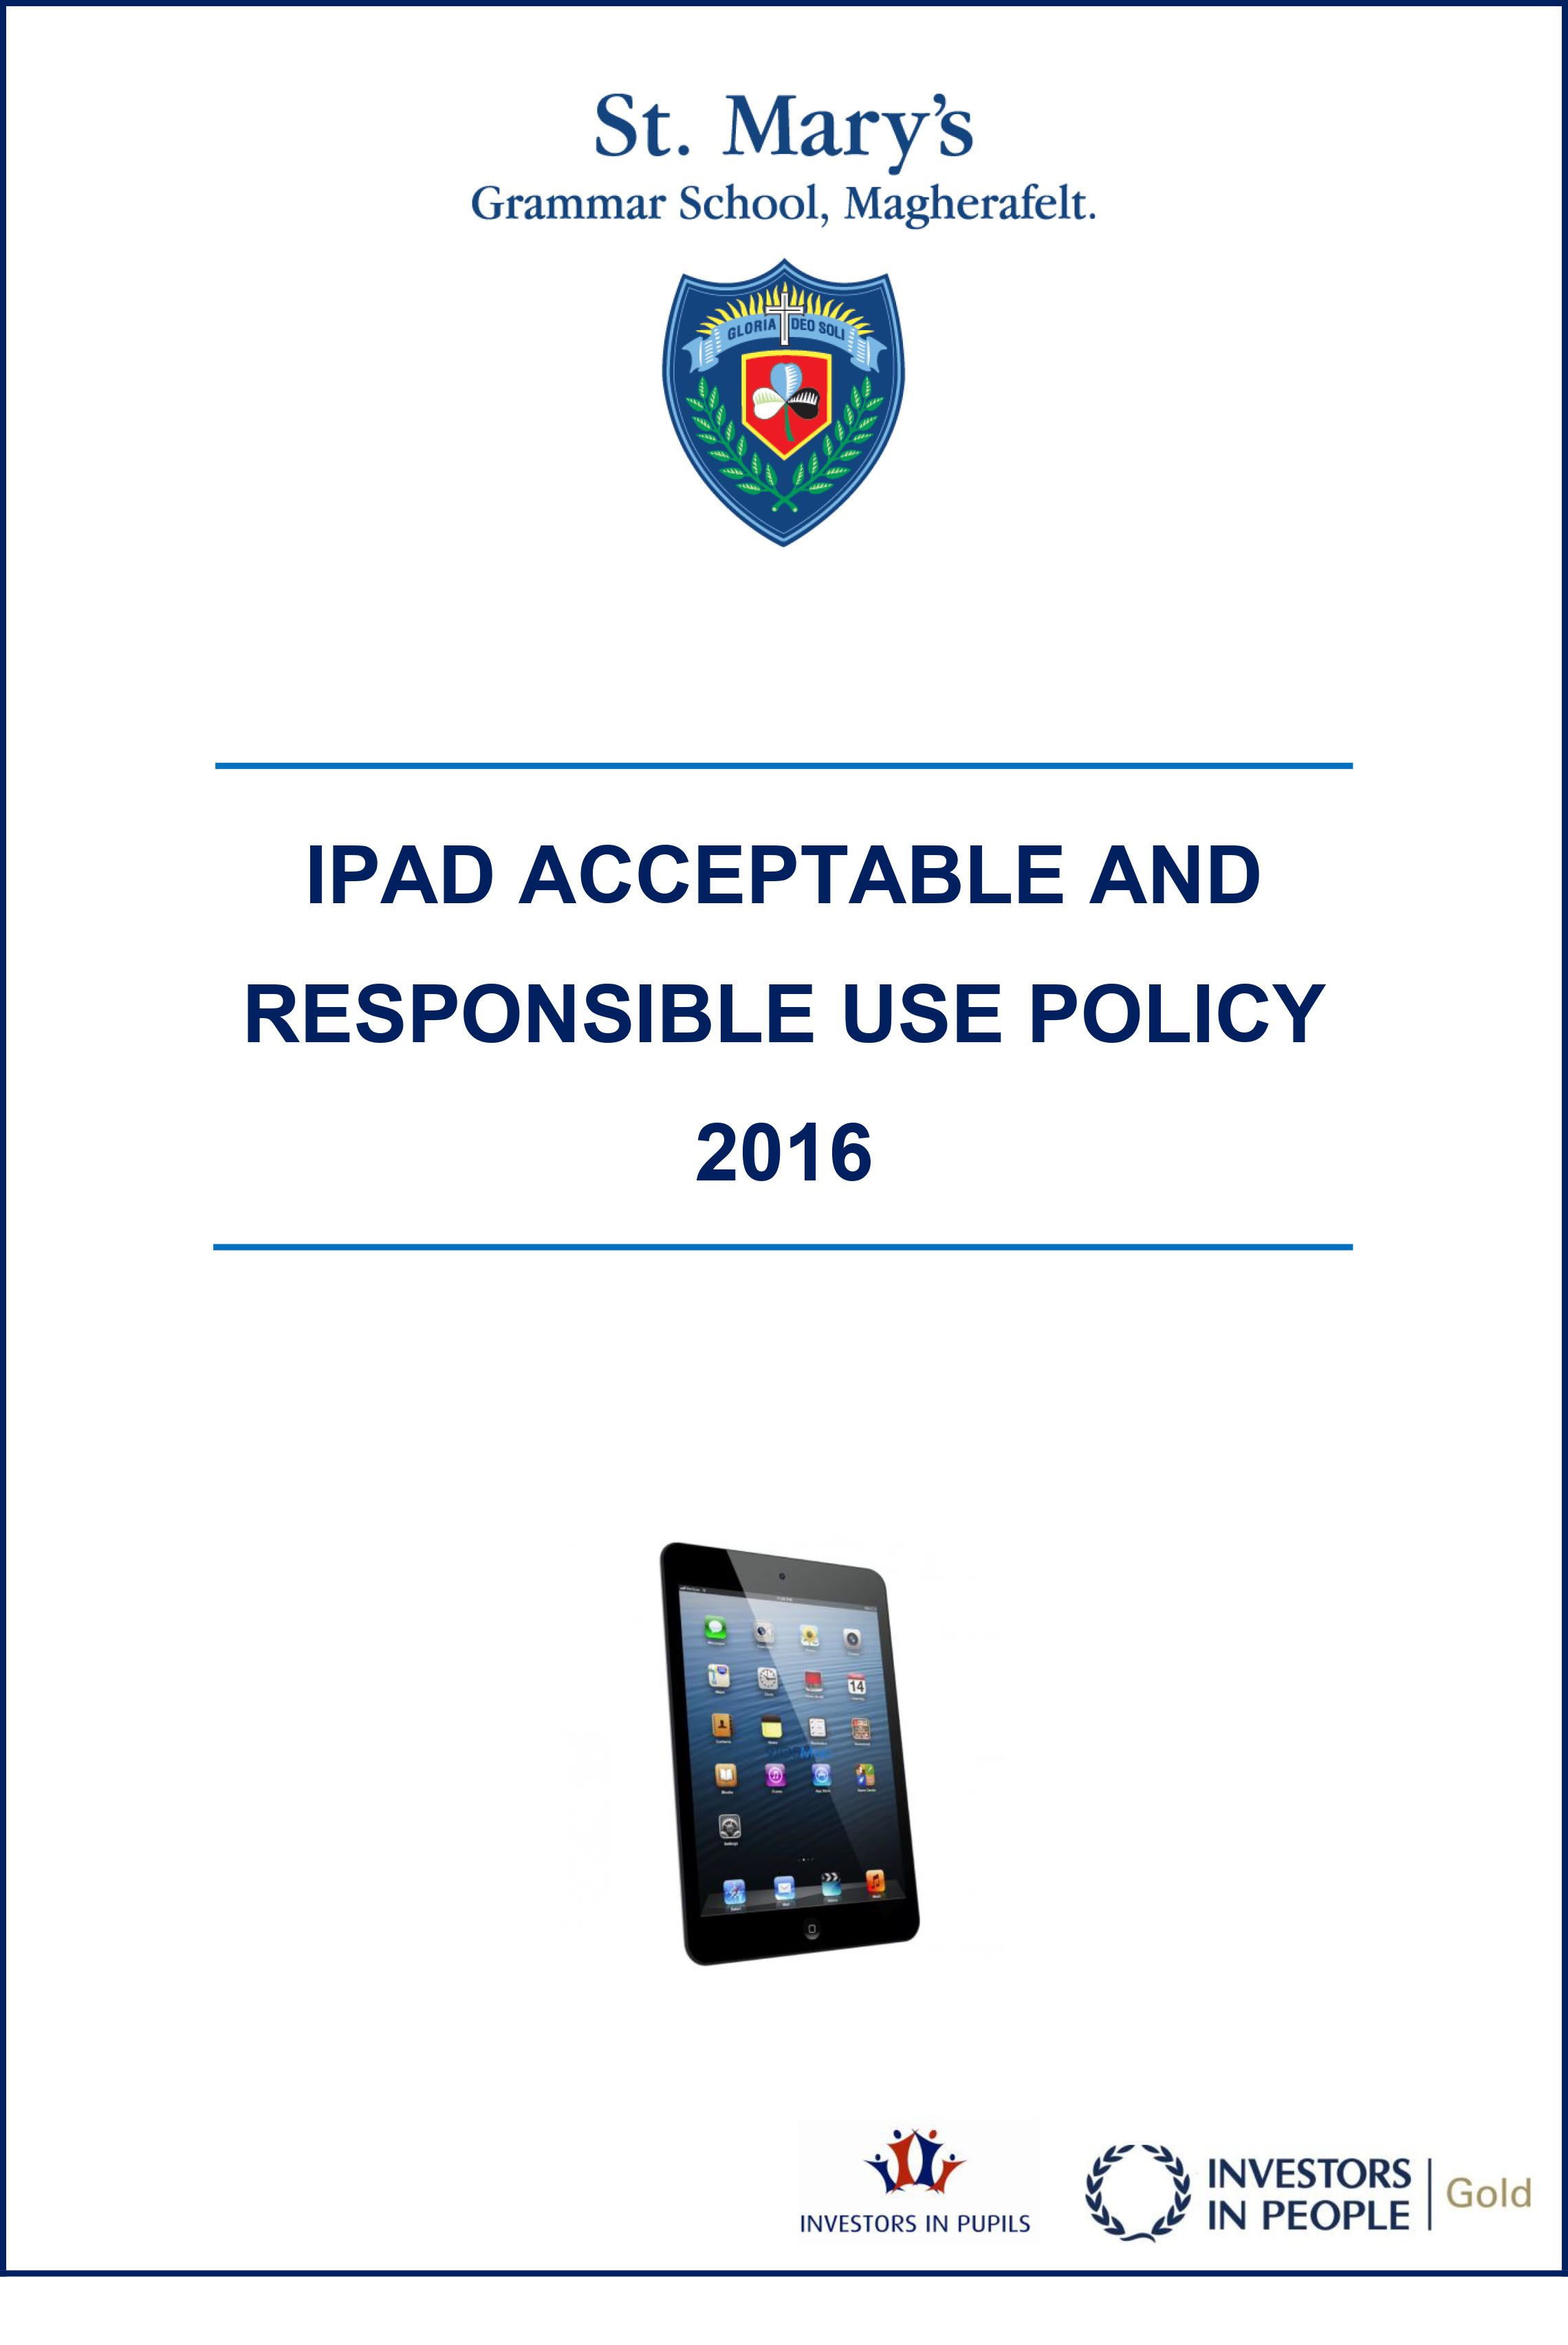 IPAD ACCEPTABLE AND RESPONSIBLE USE POLICY